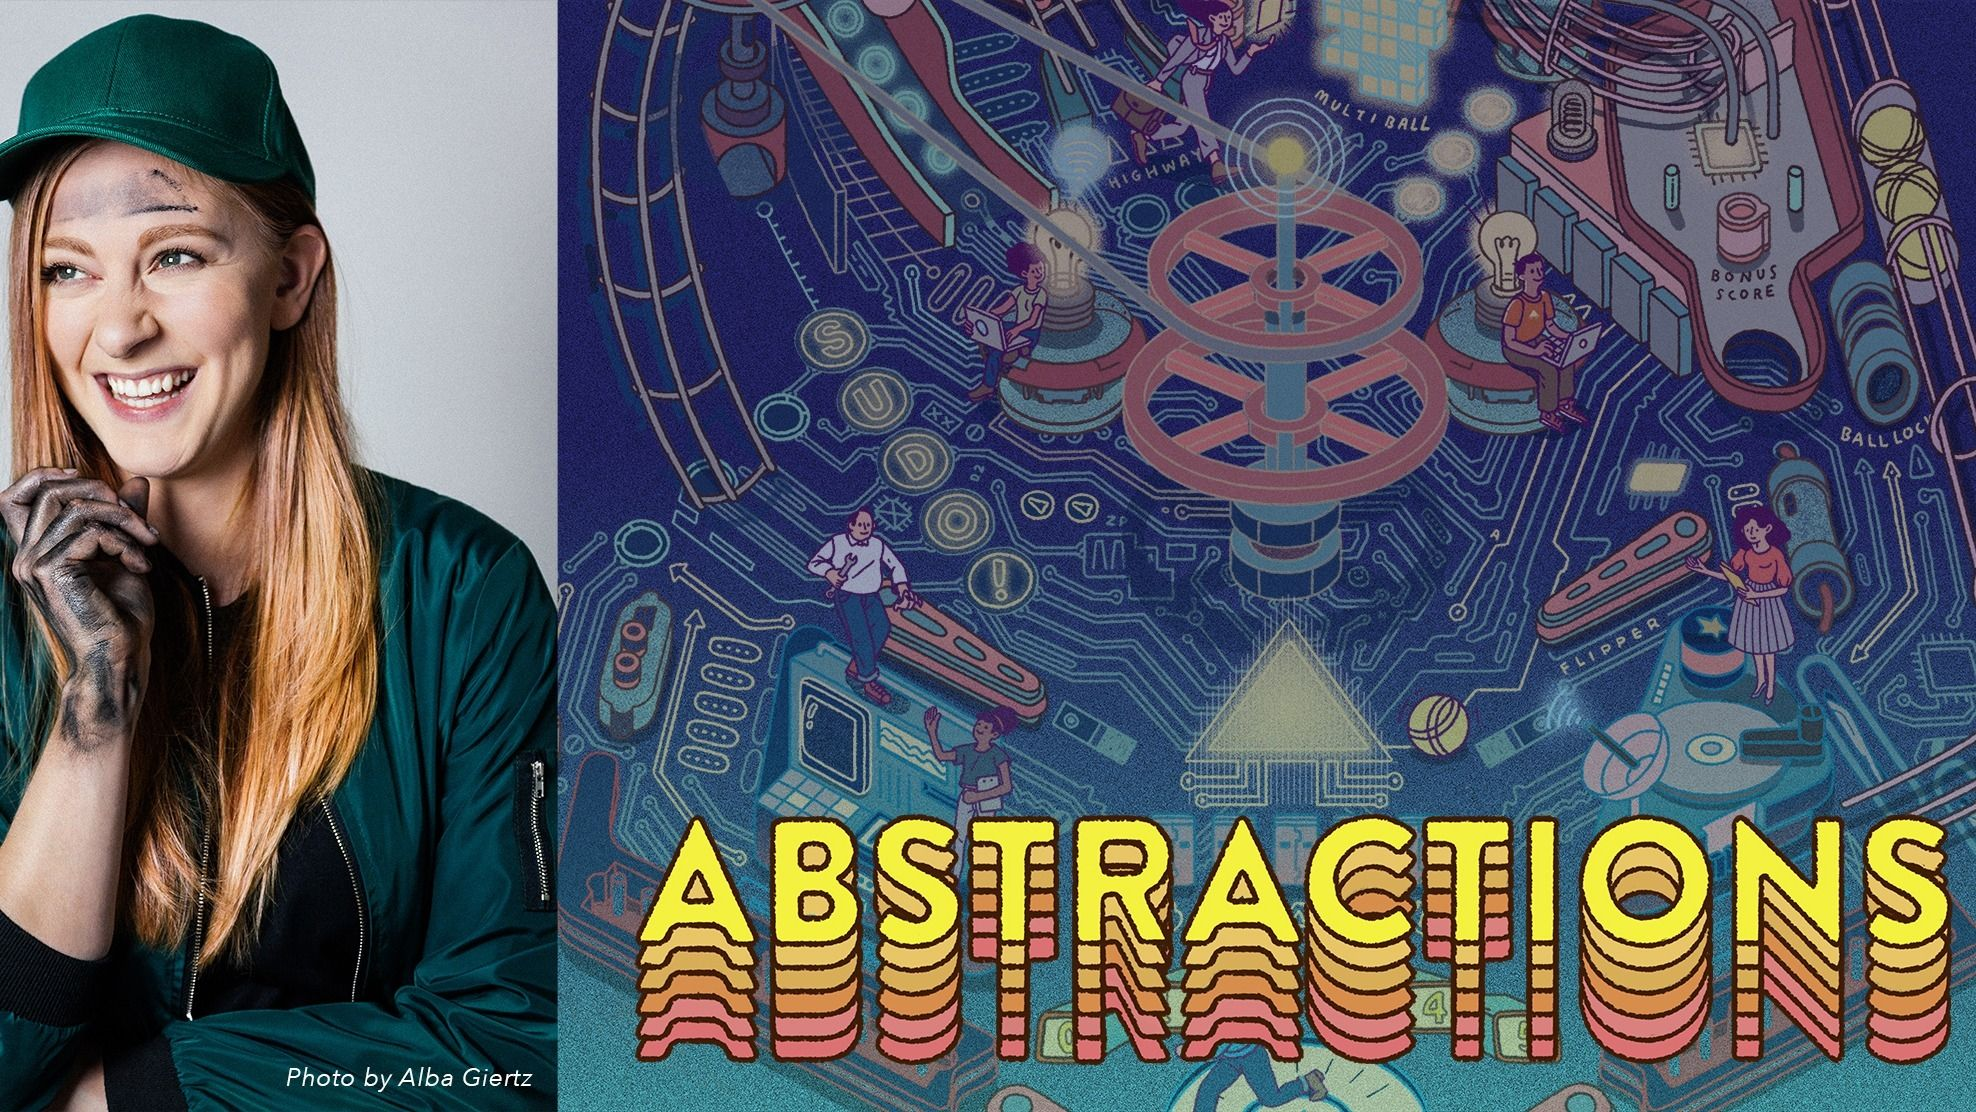 Simone Giertz at Abstractions